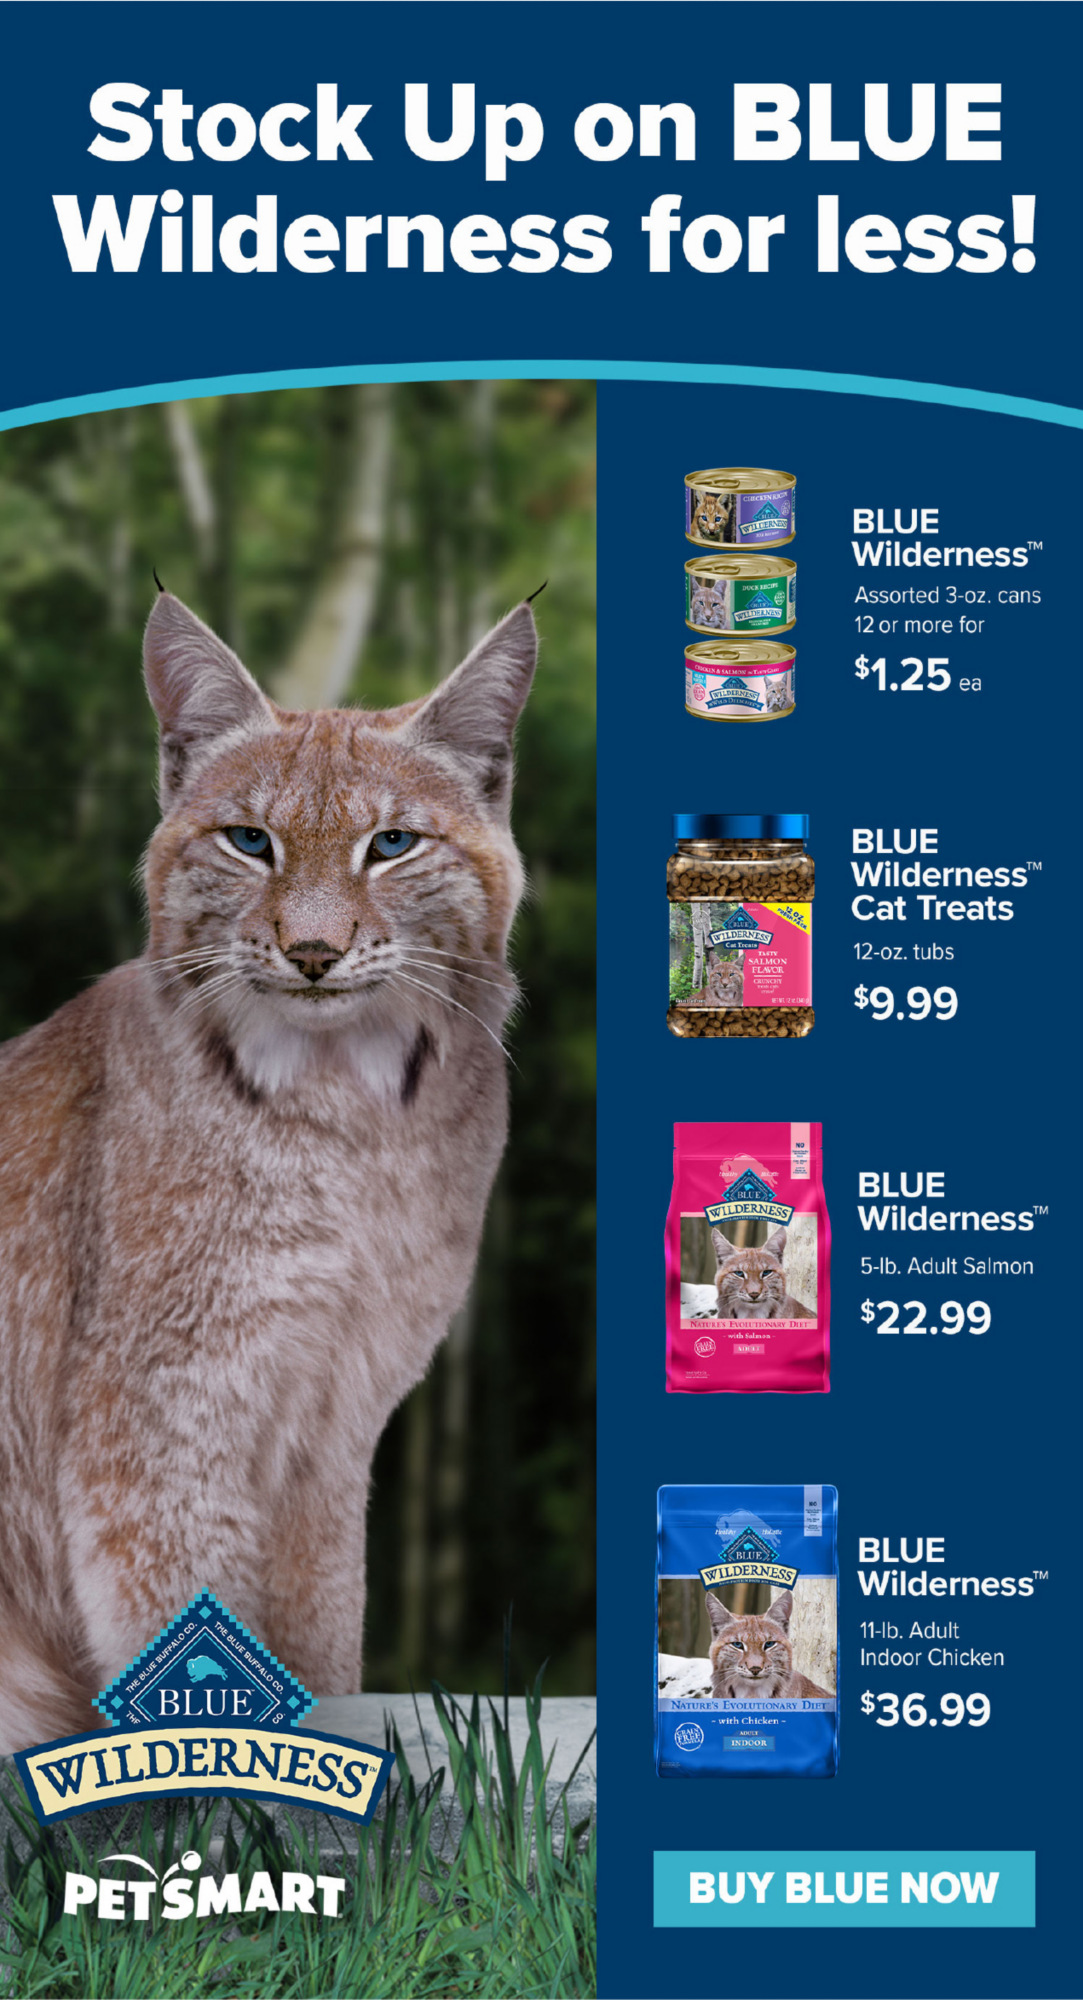 Stock up on Blue Wilderness for less! BLUE Wilderness Assorted 3 oz. cans 12 or more or $1.25 ea. BLUE Wilderness Cat Treats 12 oz. tubs $9.99 BLUE Wilderness 11 lb. bag Adult indoor chicken $36.99 BUY BLUE NOW